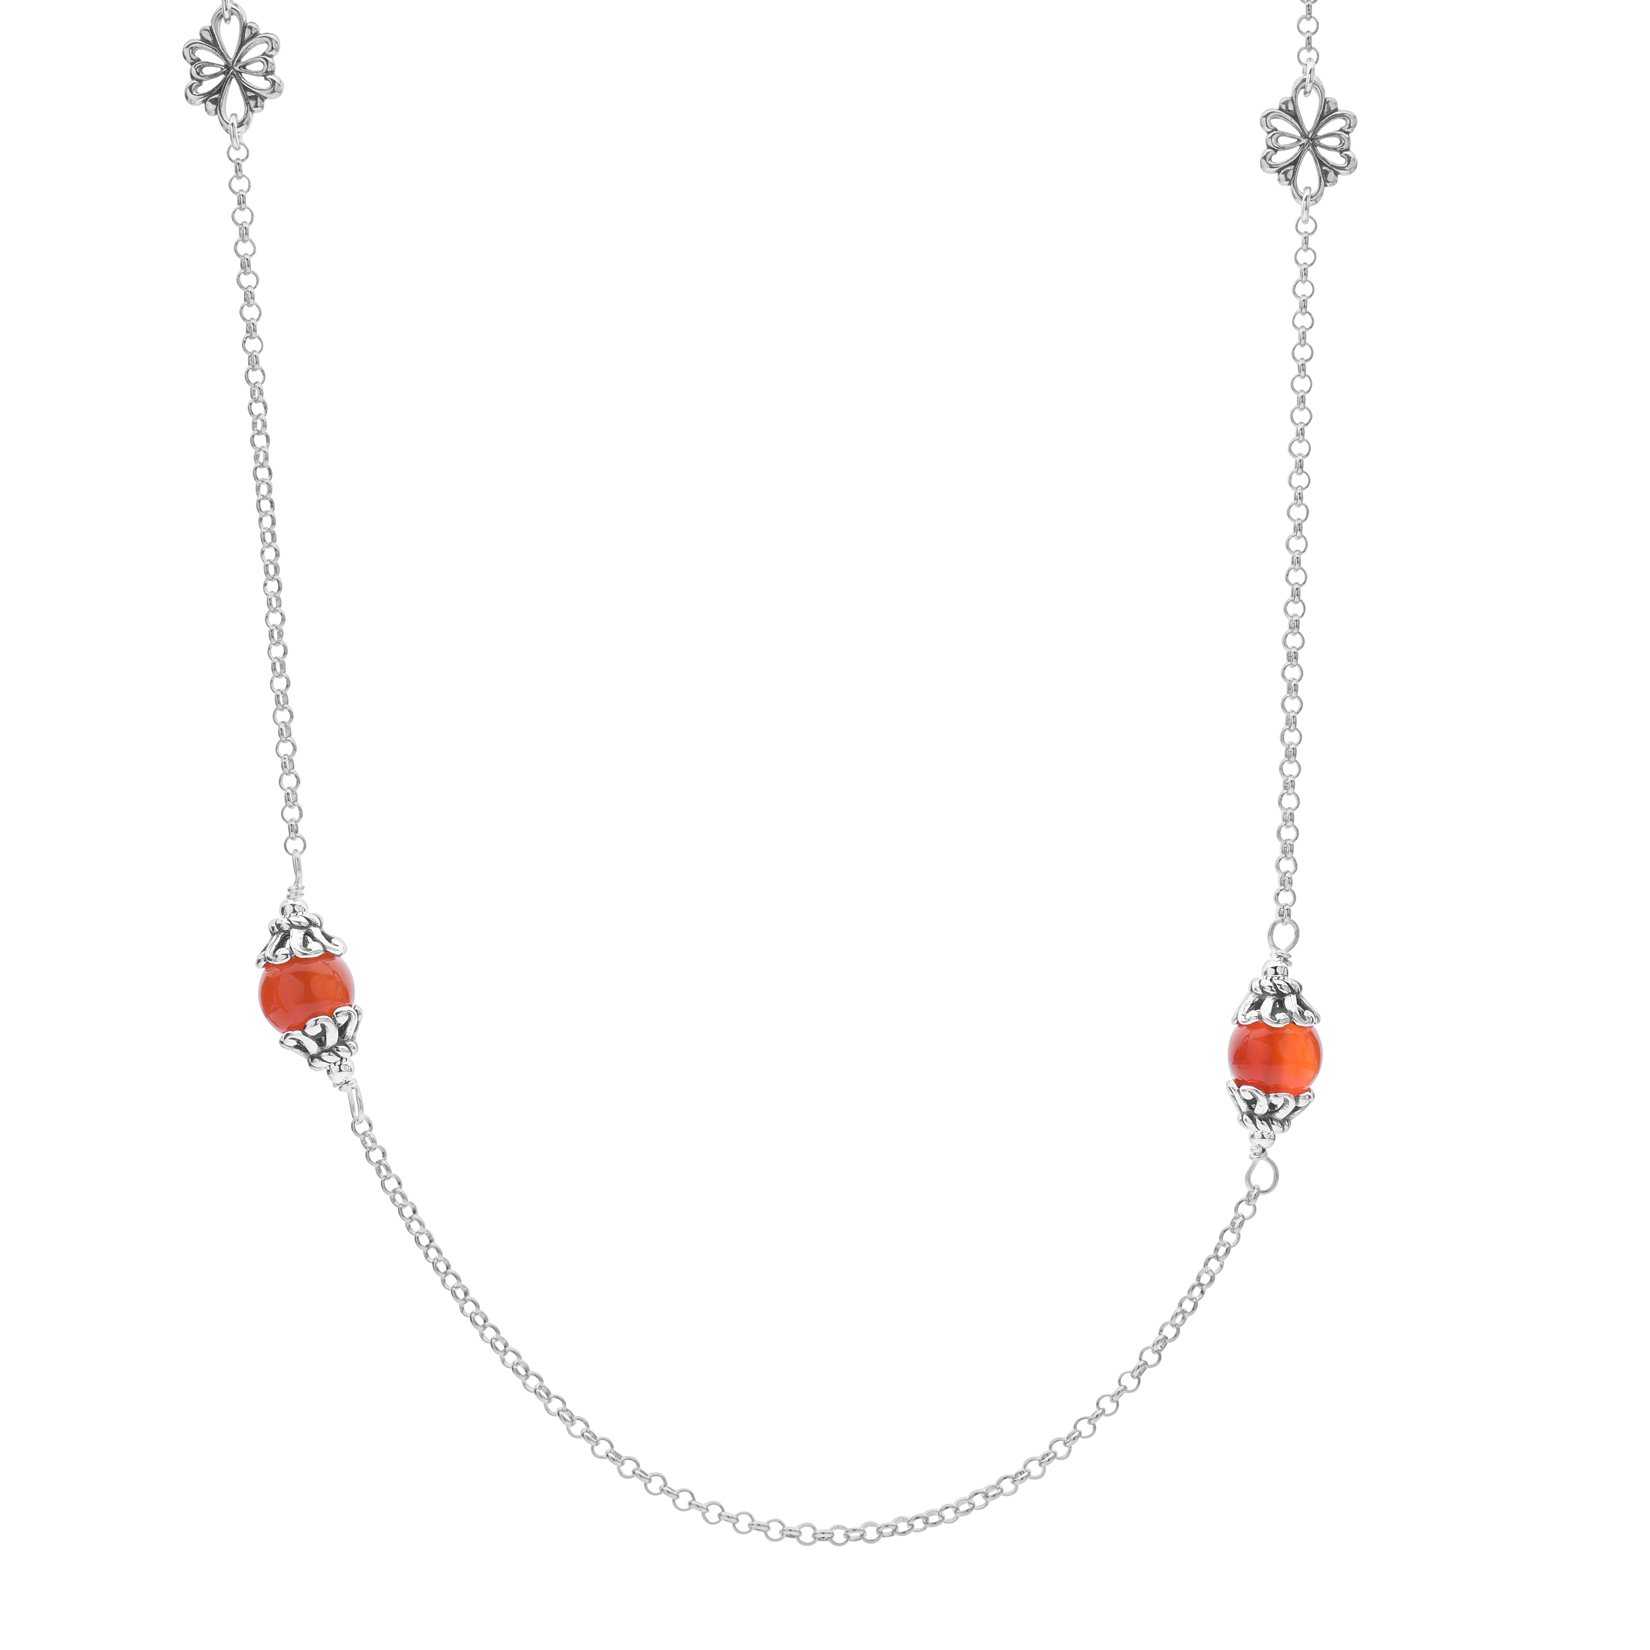 Carolyn Pollack .925 Sterling Silver Carnelian Filigree Bead Station Necklace with Rolo Chain, 32''